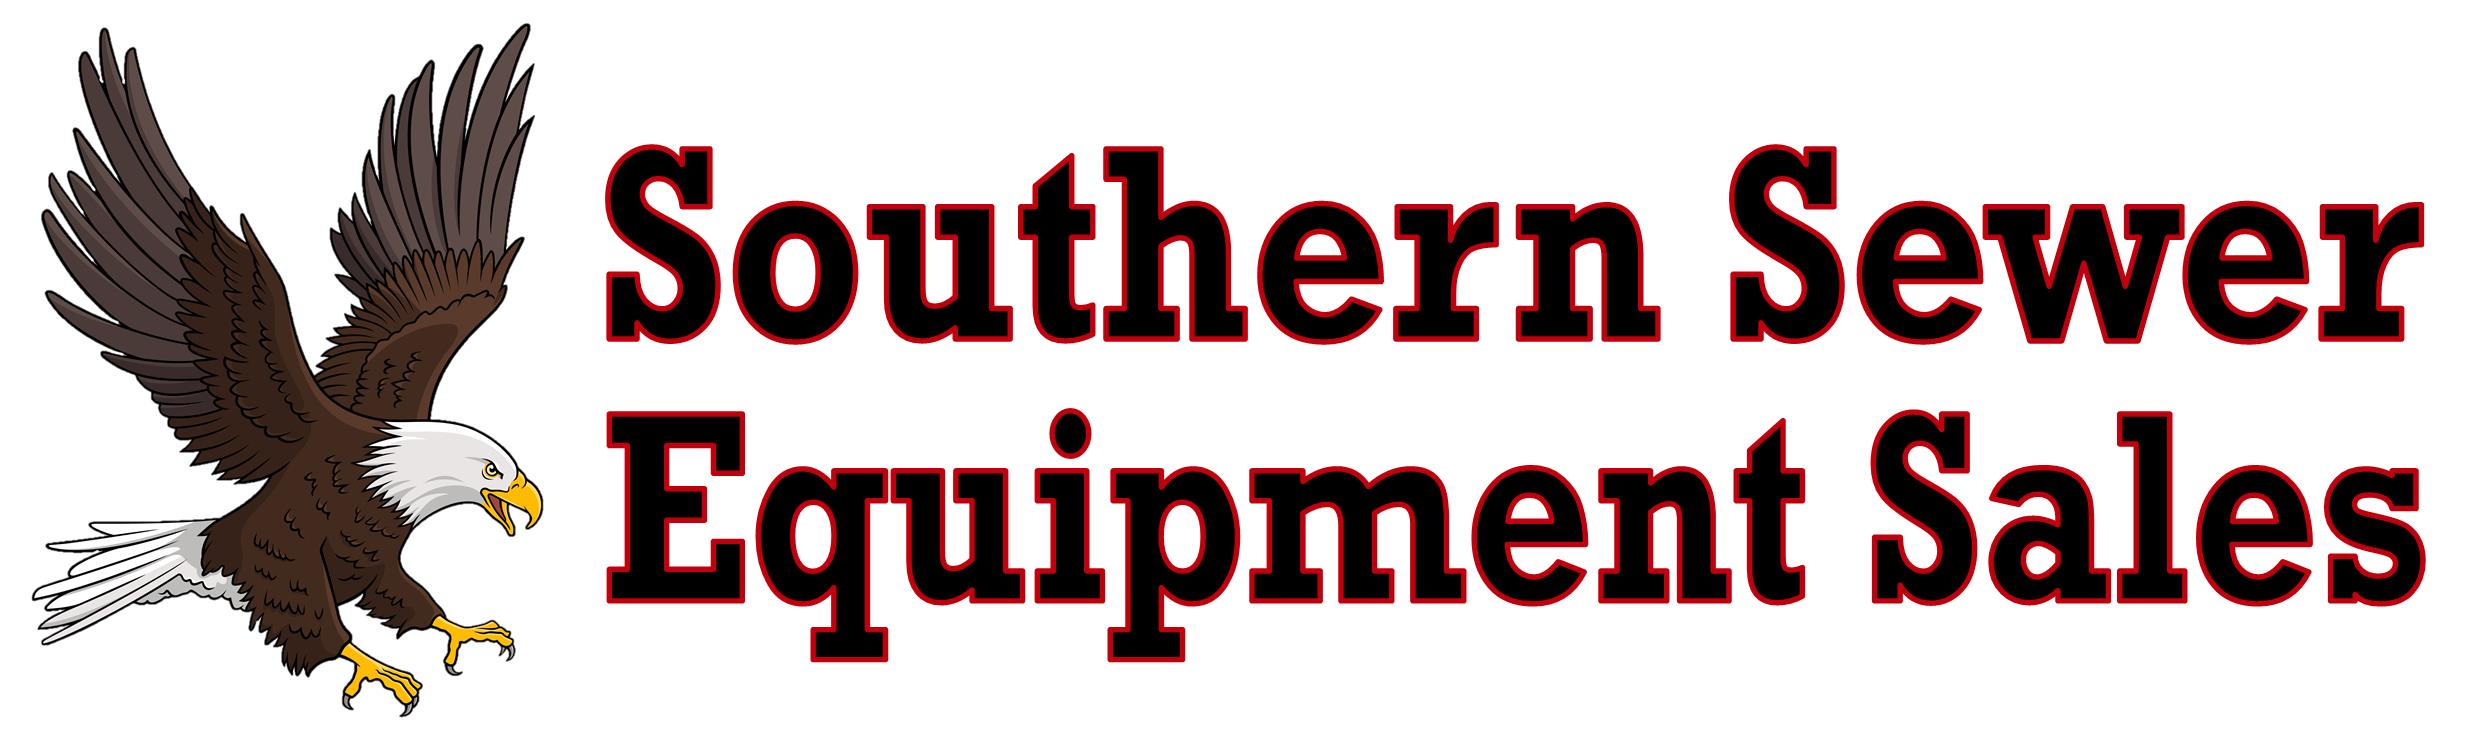 Southern Sewer Equipment Sales